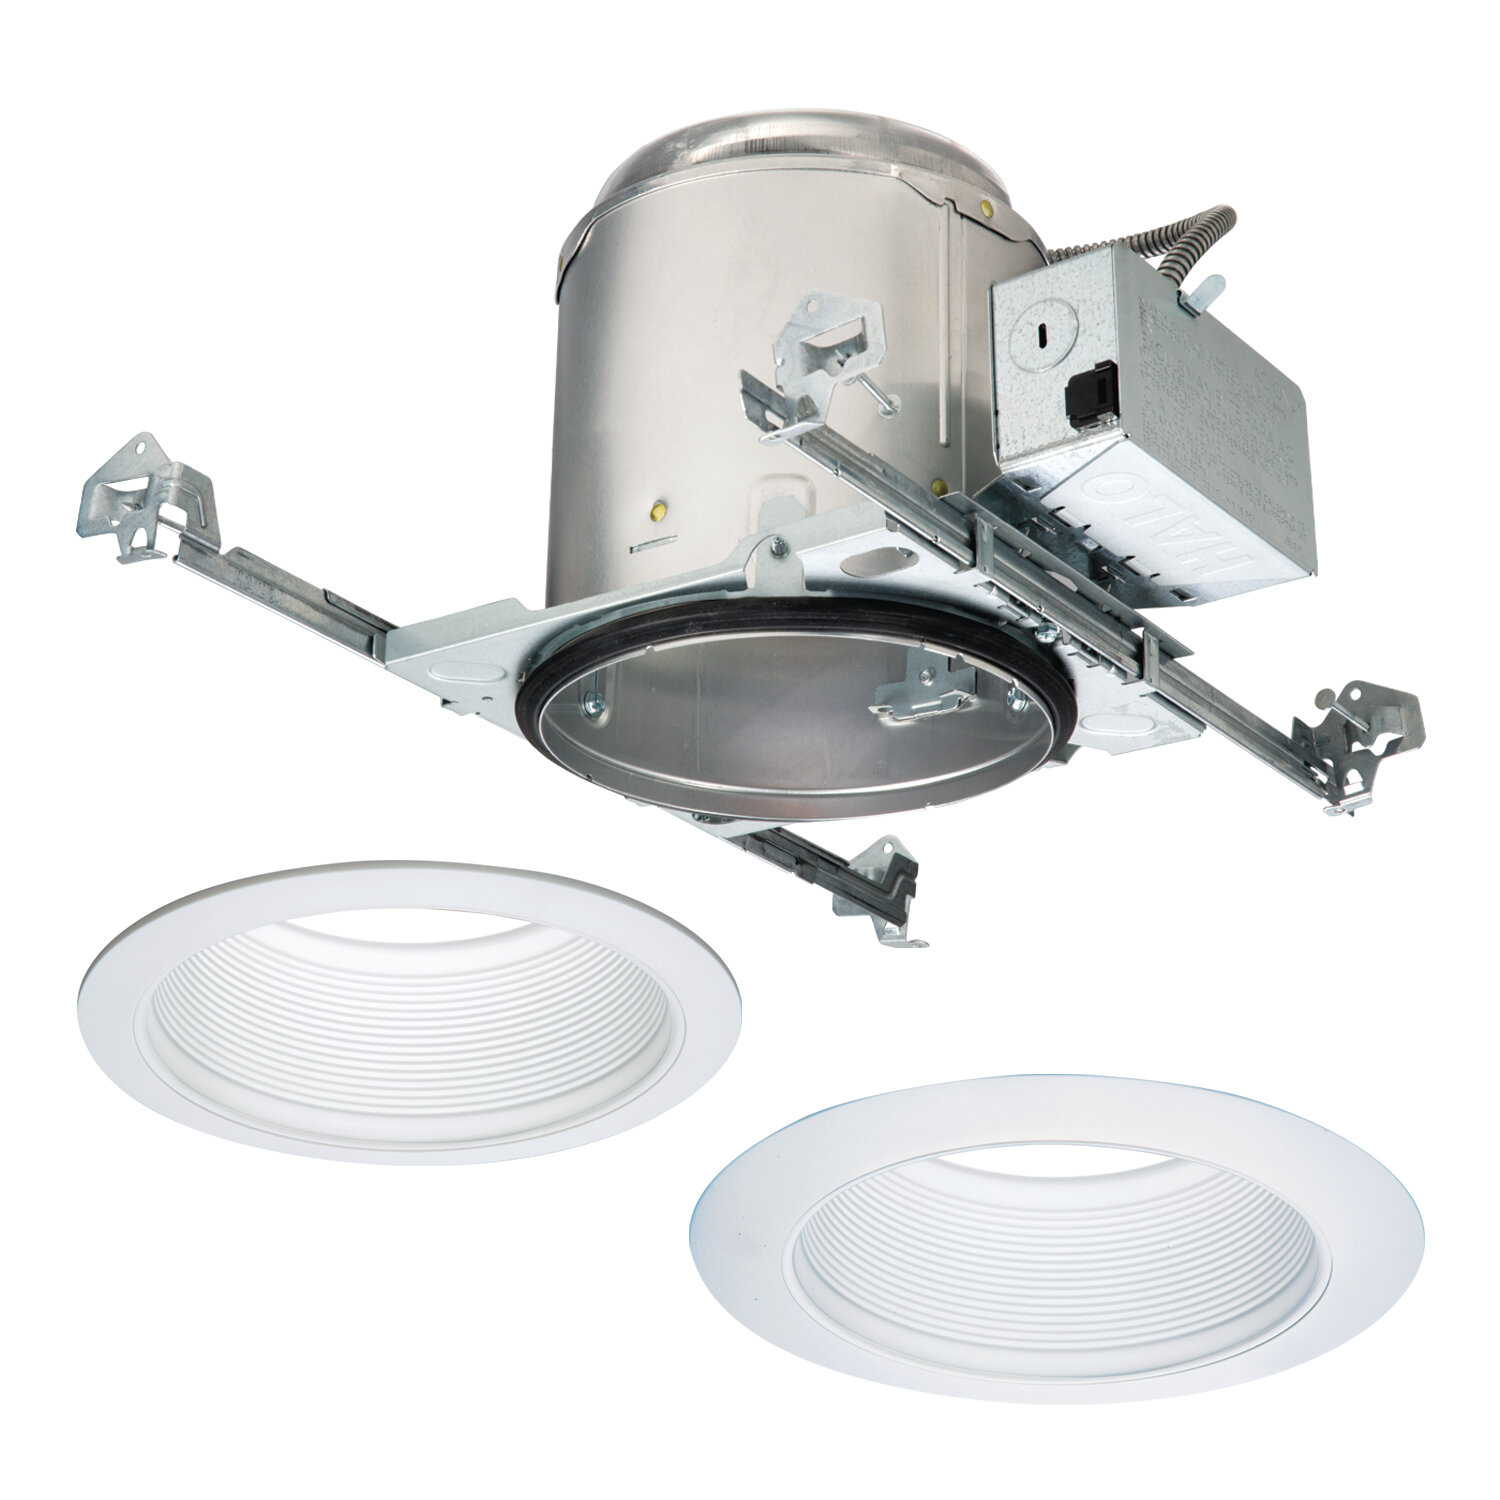 Halo 6 Recessed Lighting Kit